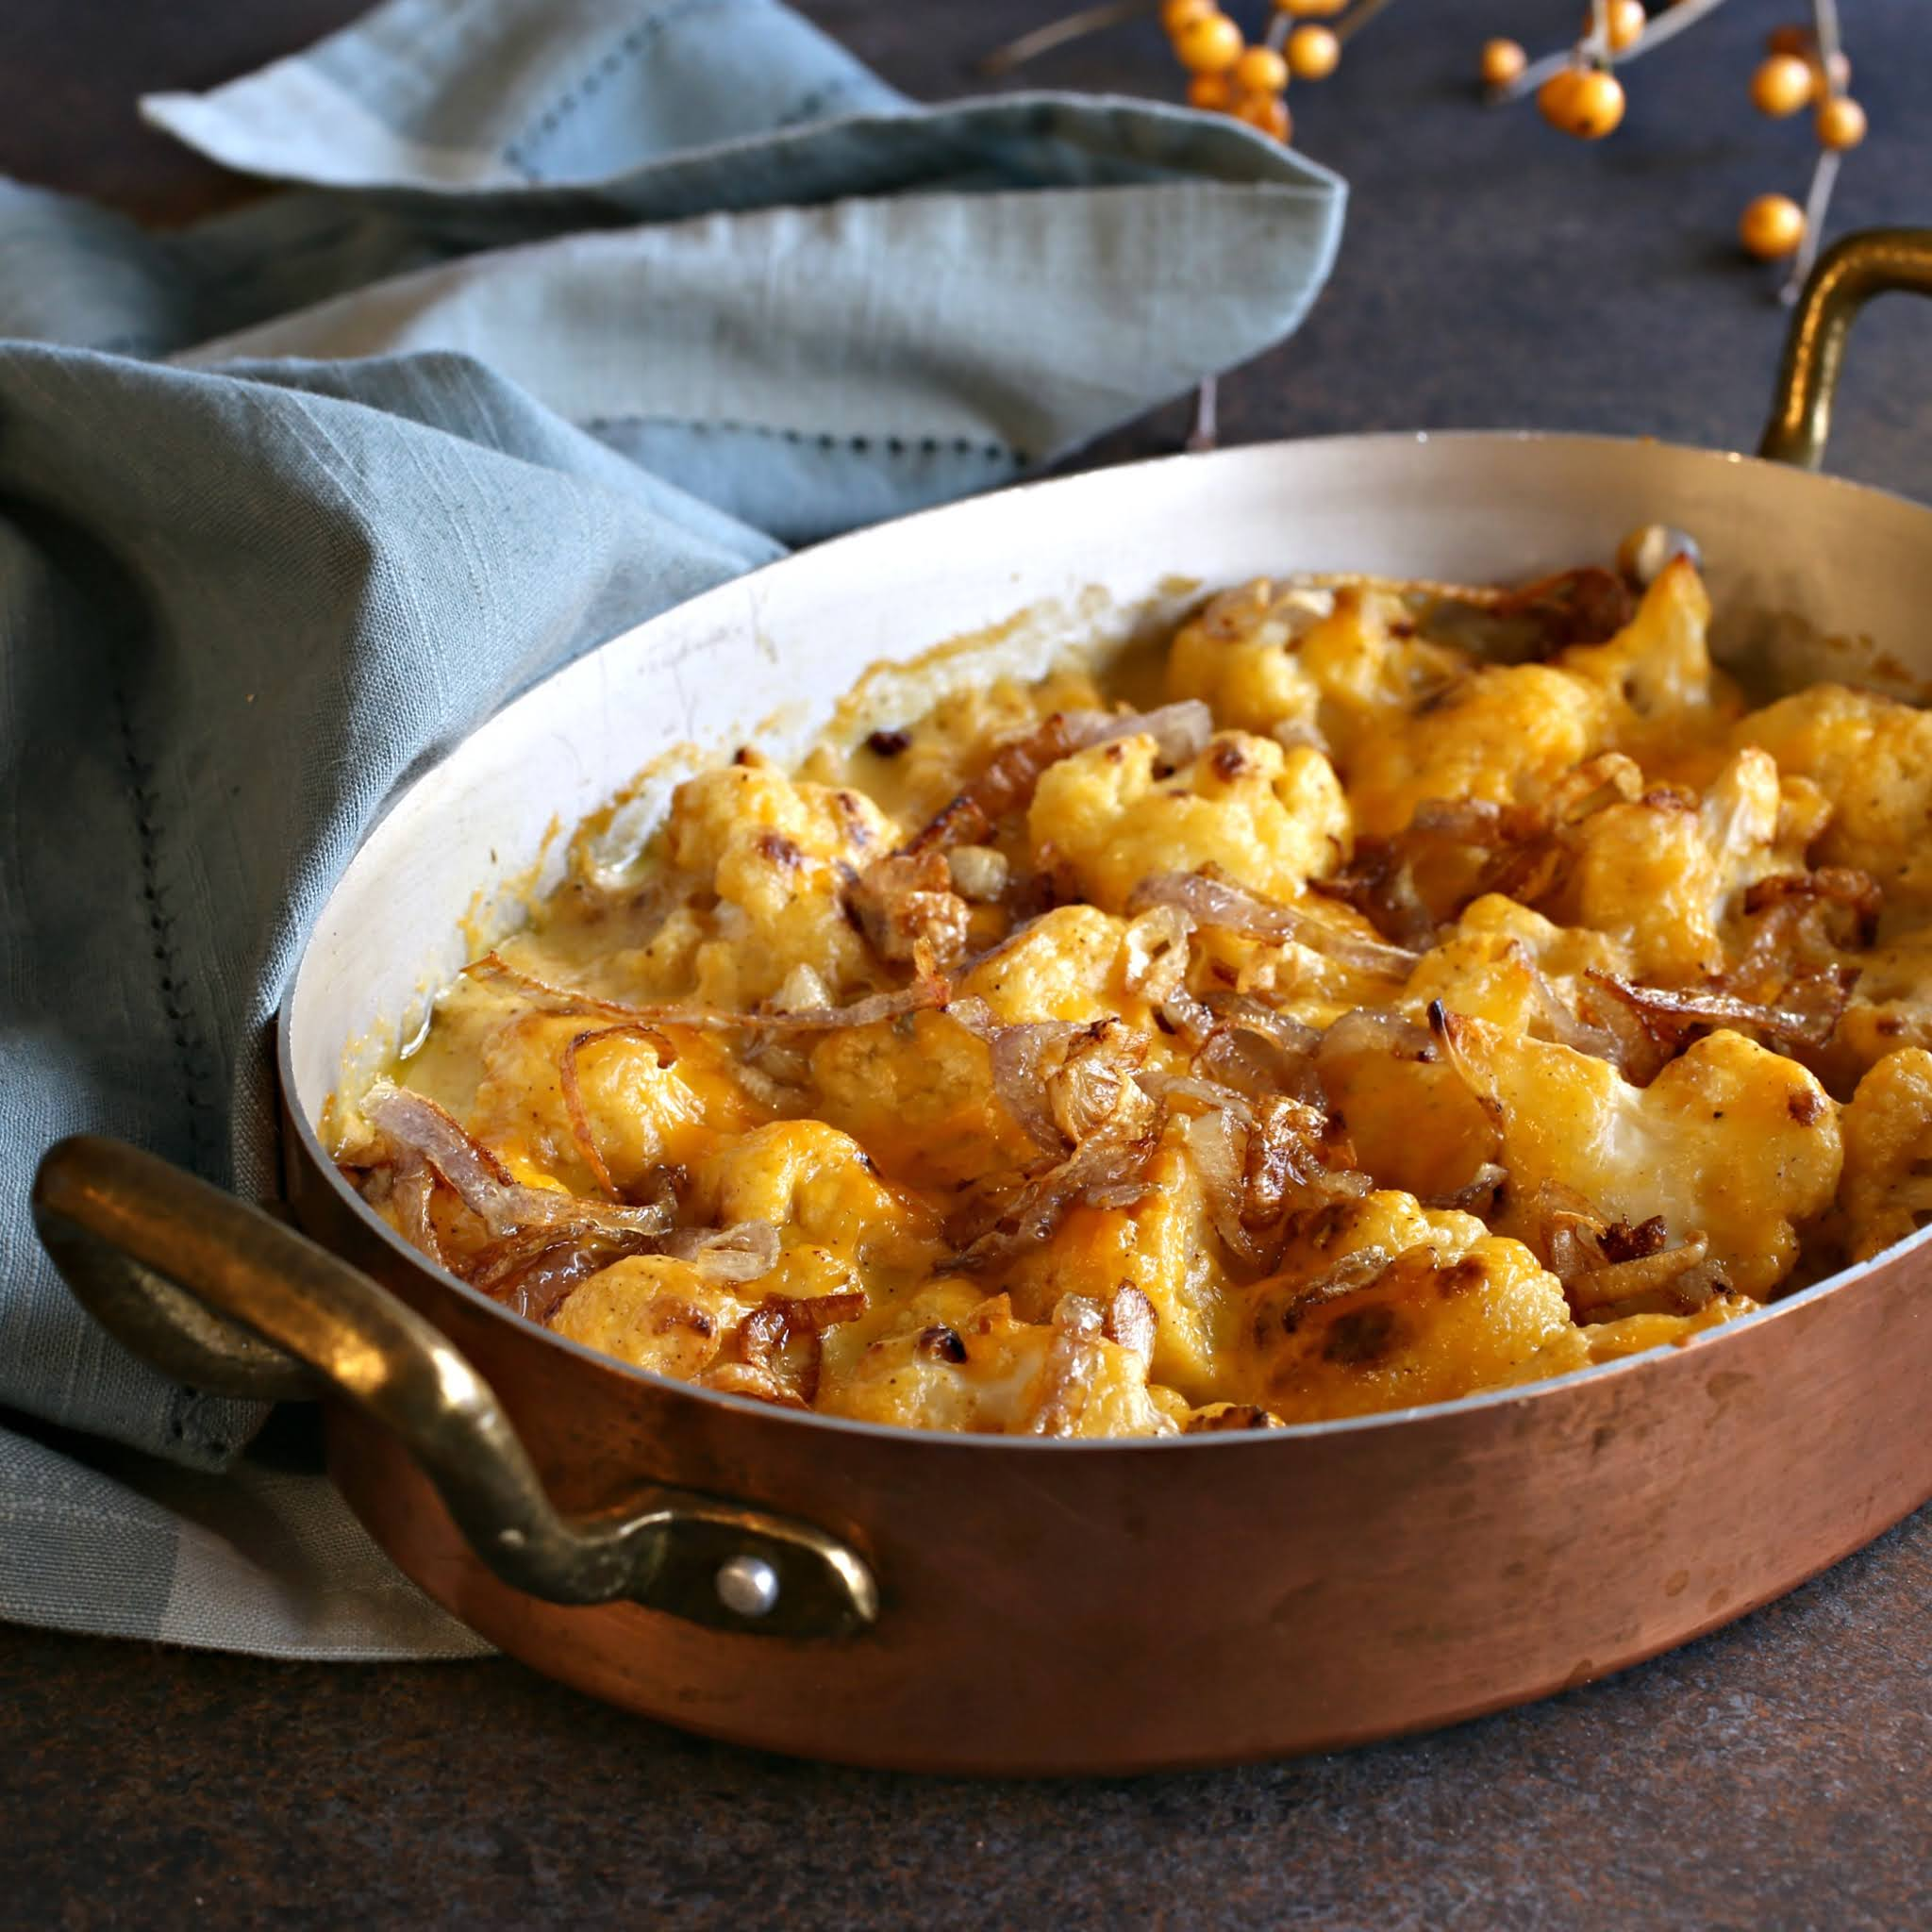 Recipe for a cheddar cheese cauliflower gratin topped with fried shallots.